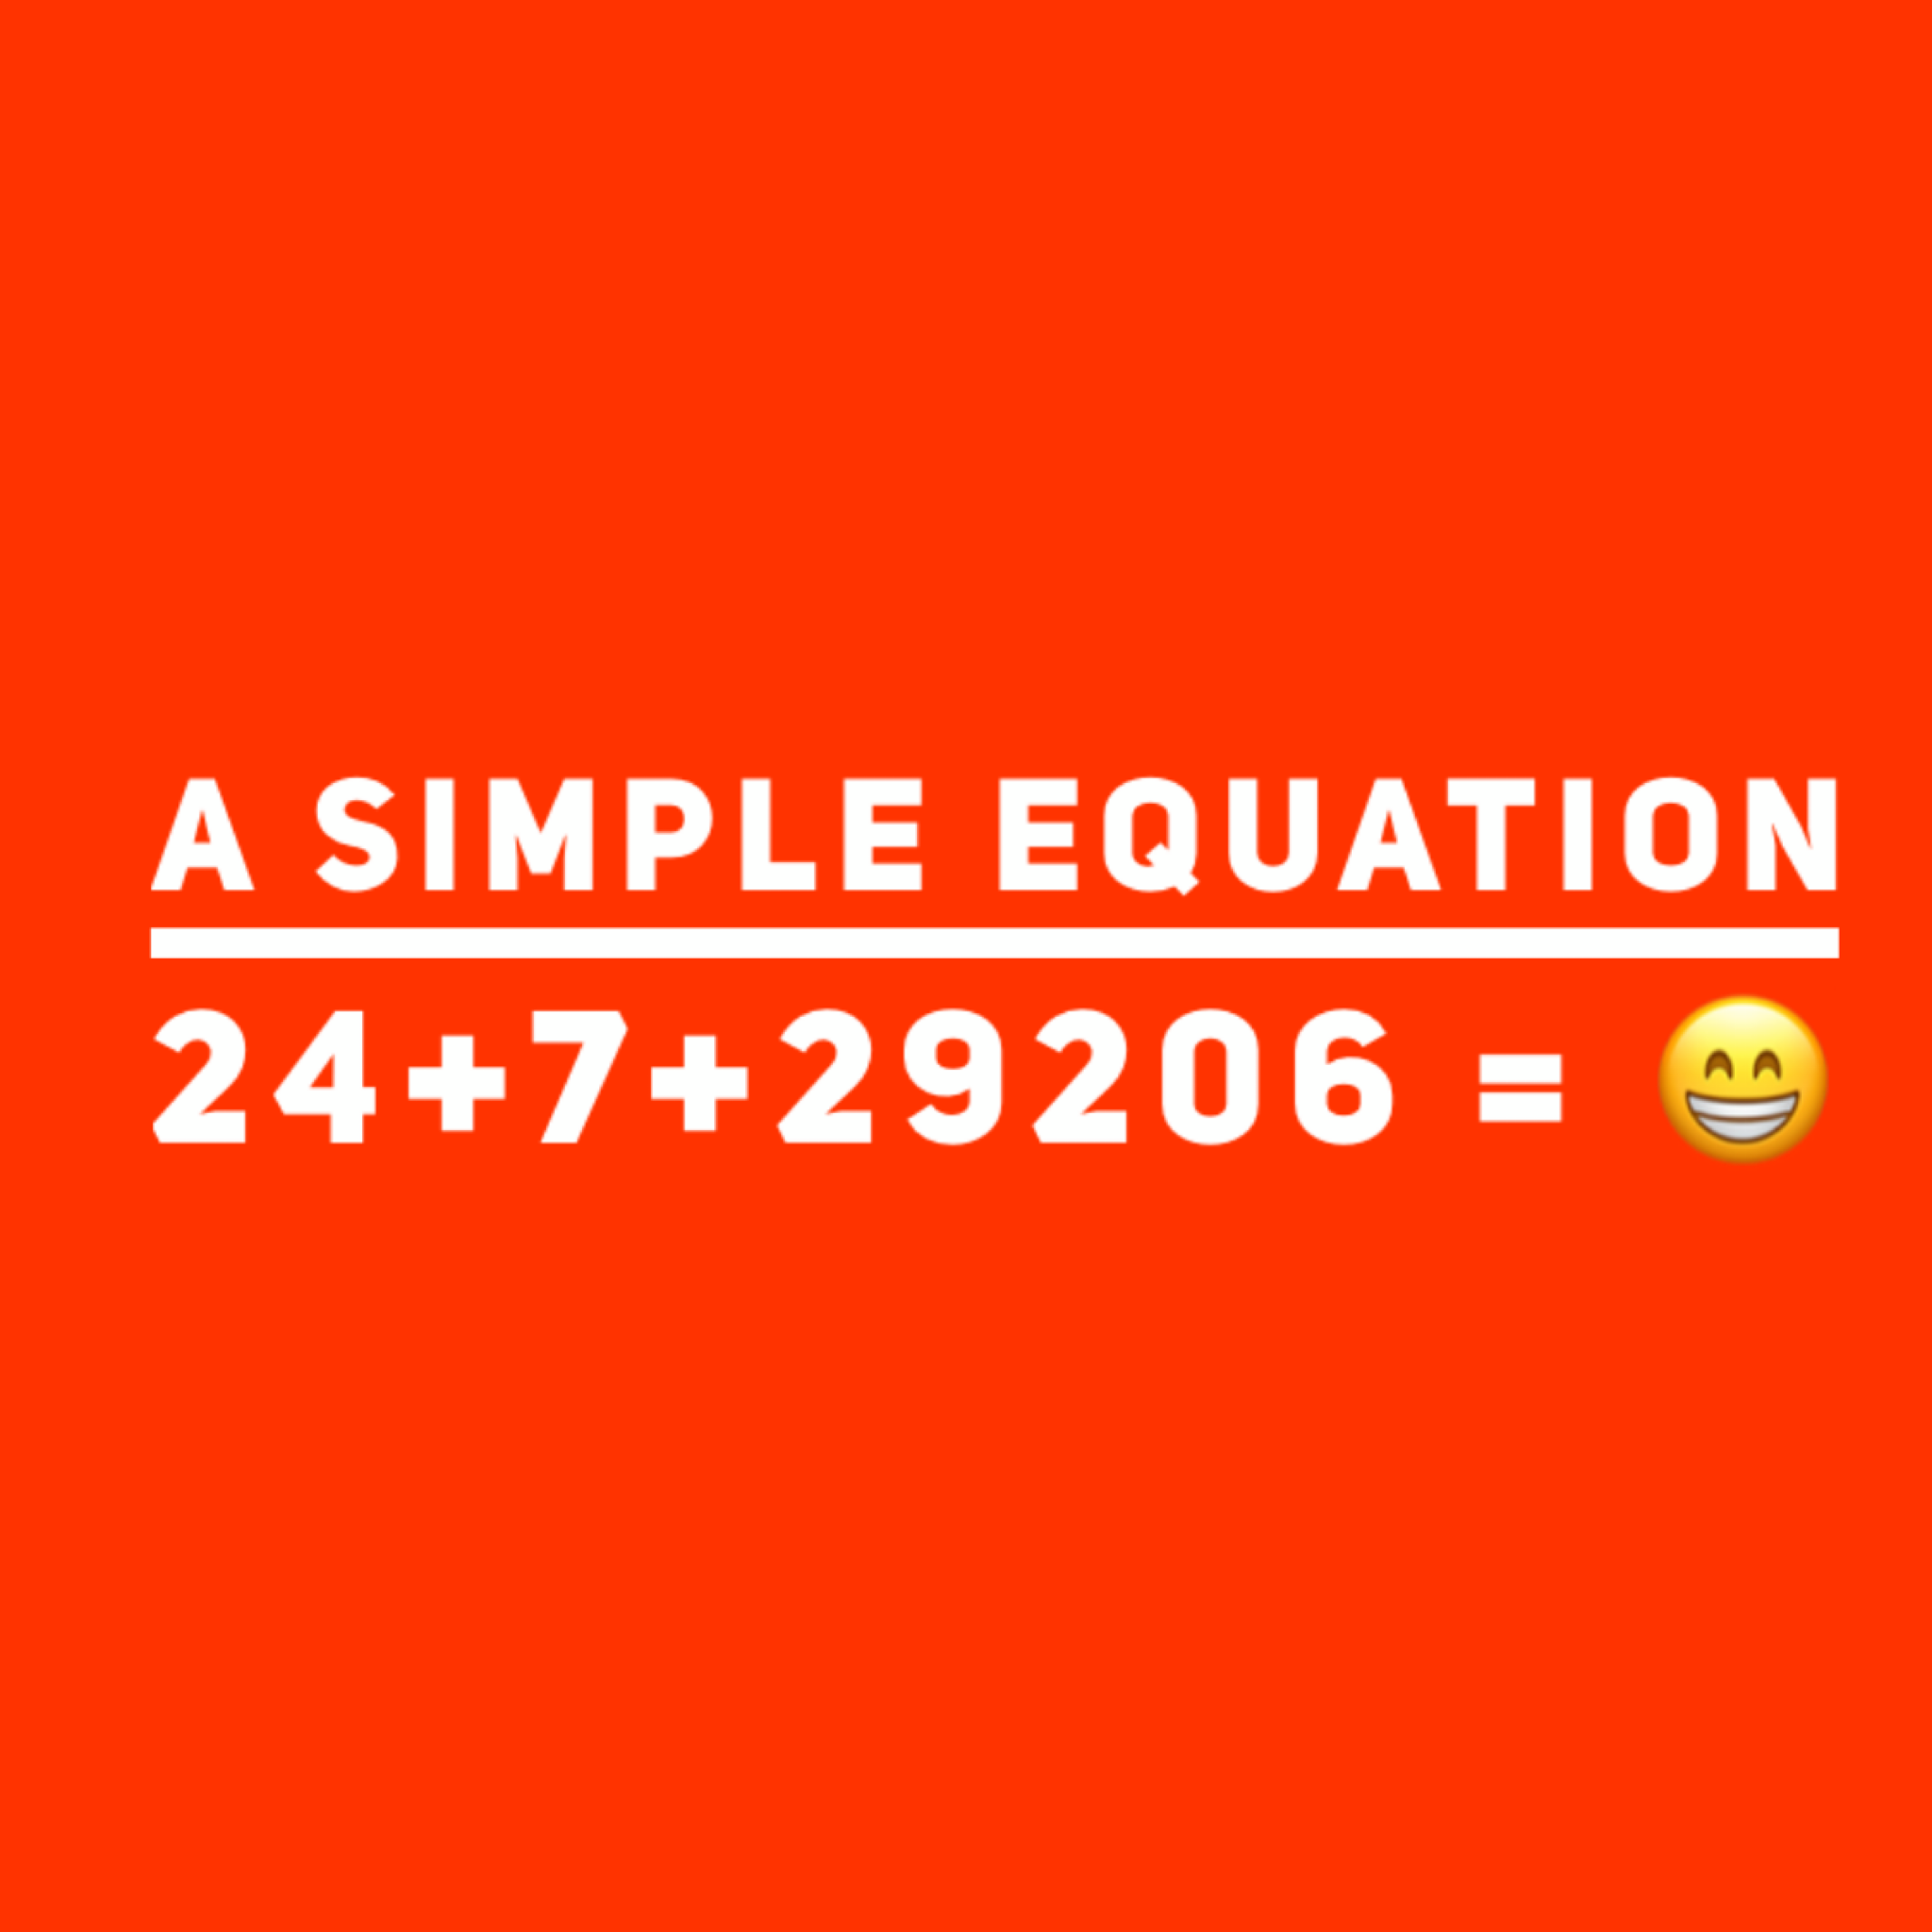 A Simple Equation